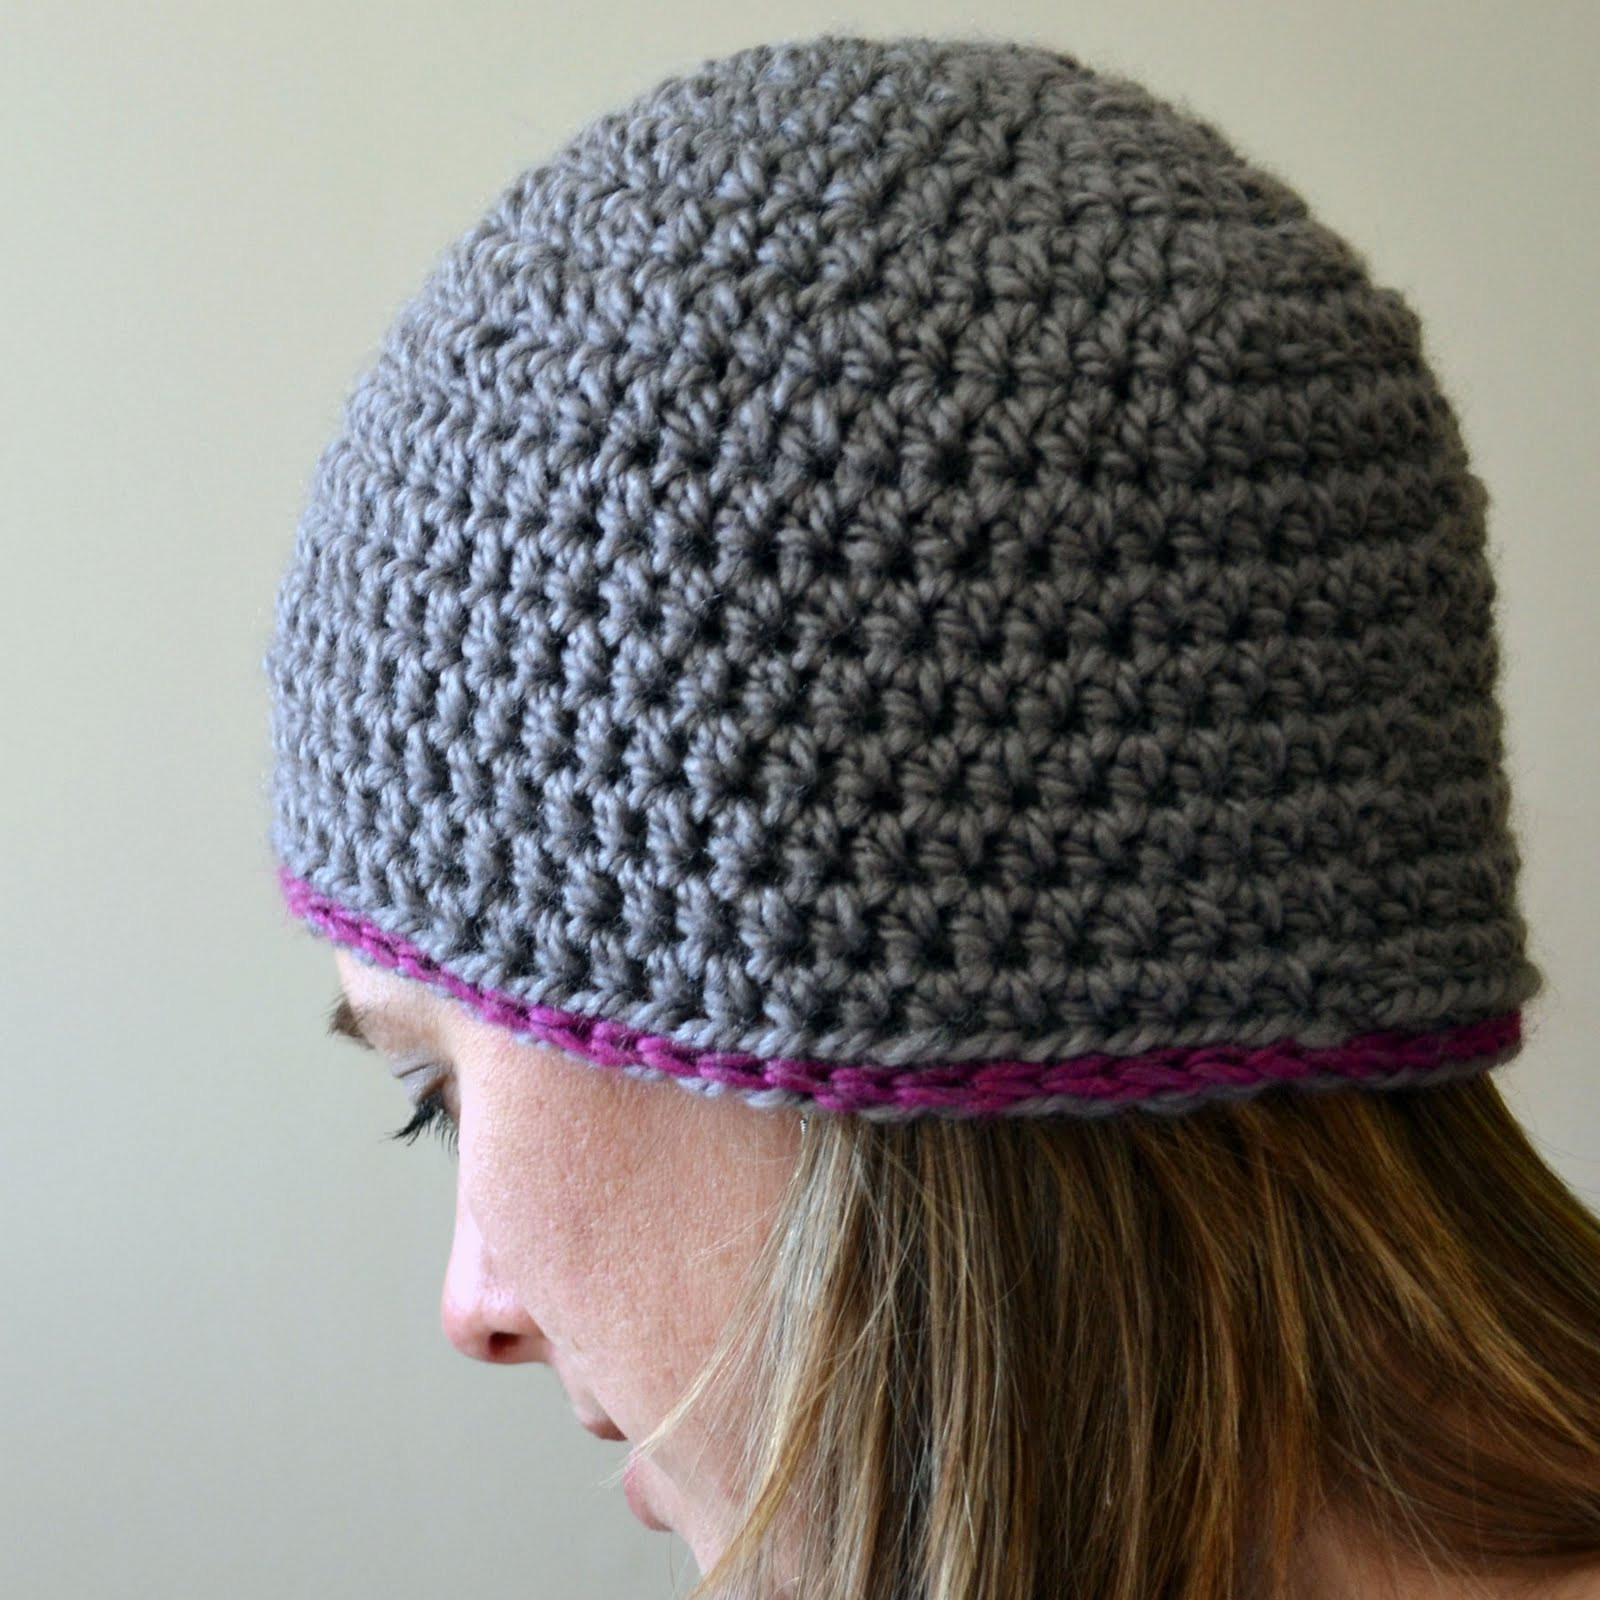 Unique Crochet In Color Chunky Beanie Pattern Crochet Beanie Tutorial Of Attractive 48 Pics Crochet Beanie Tutorial